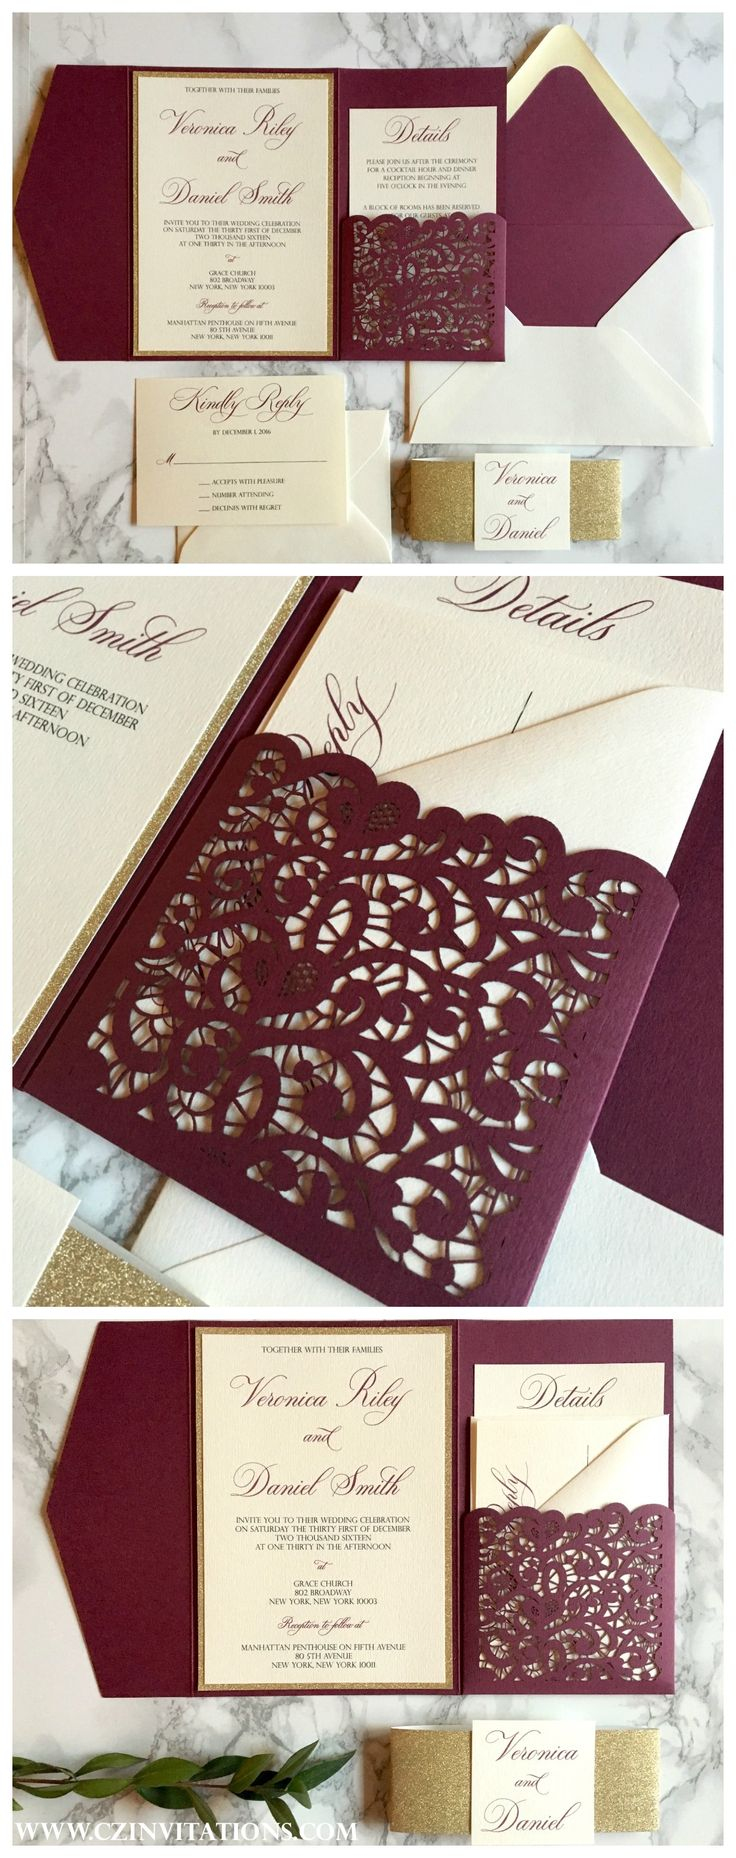 We love this Lace Laser cut design on the burgundy pocket! Such an elegant wedding invitation that is available in 80 colors!